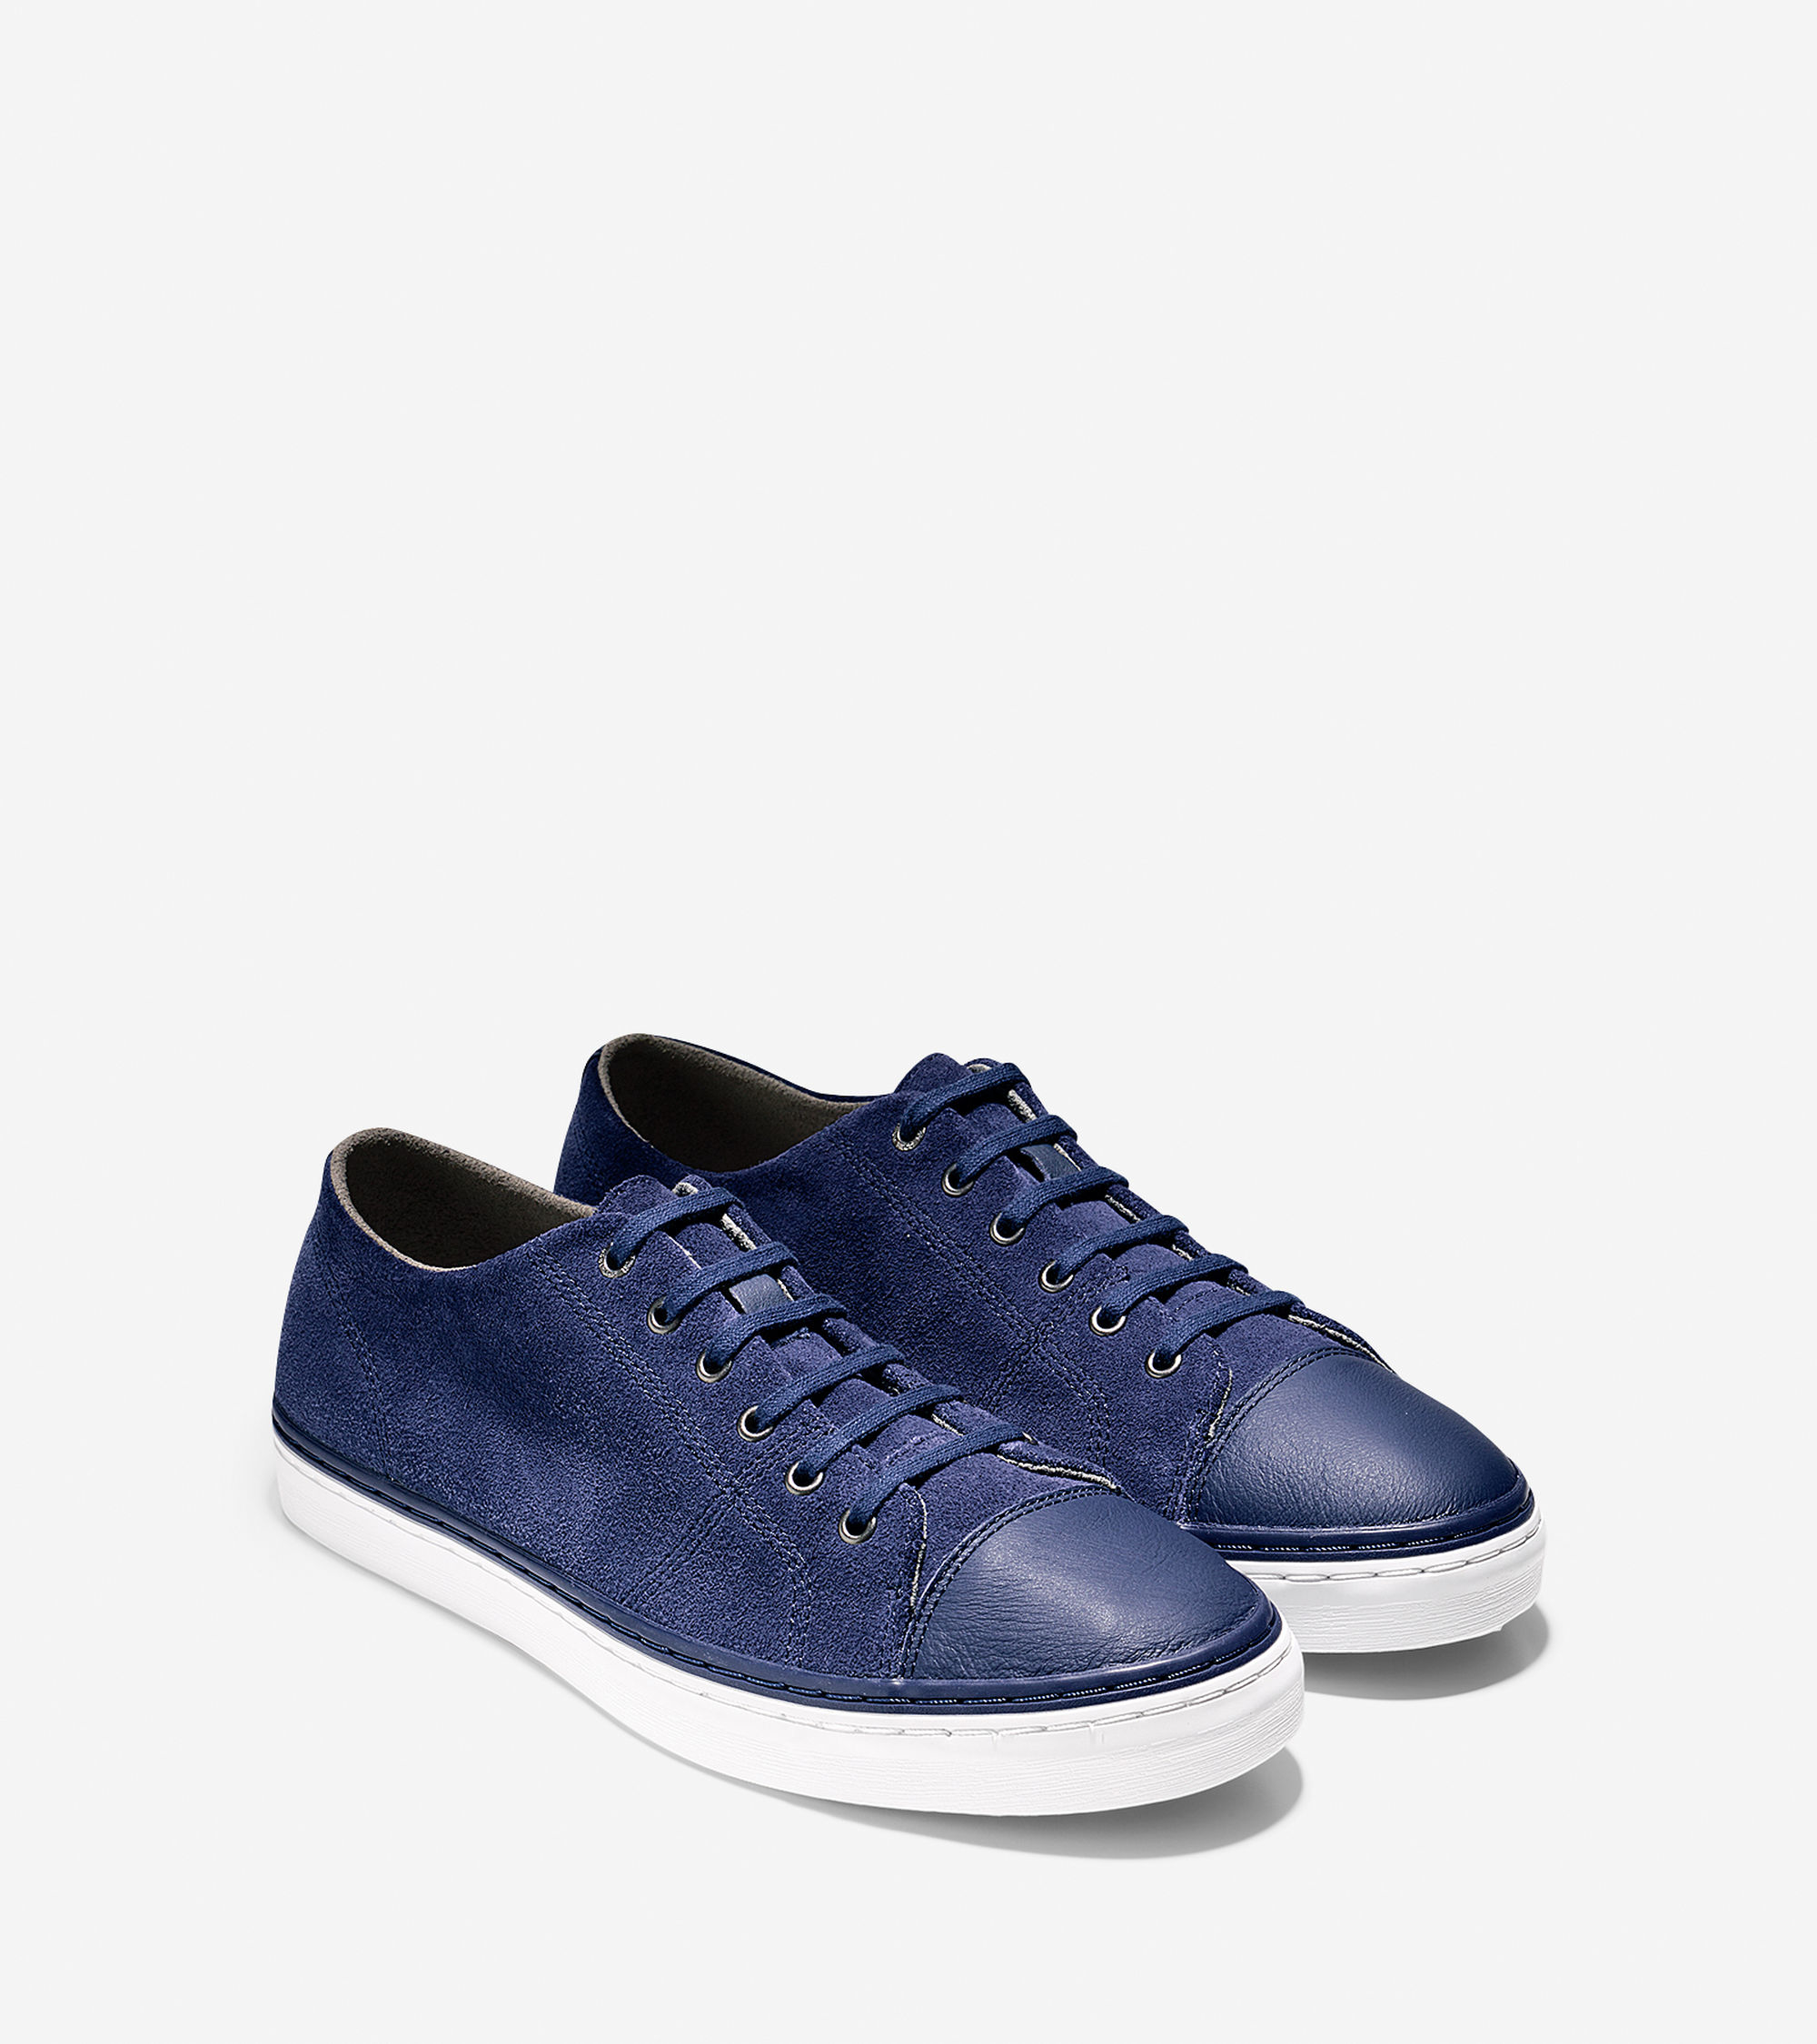 Blue Bunny Clarks Shoes